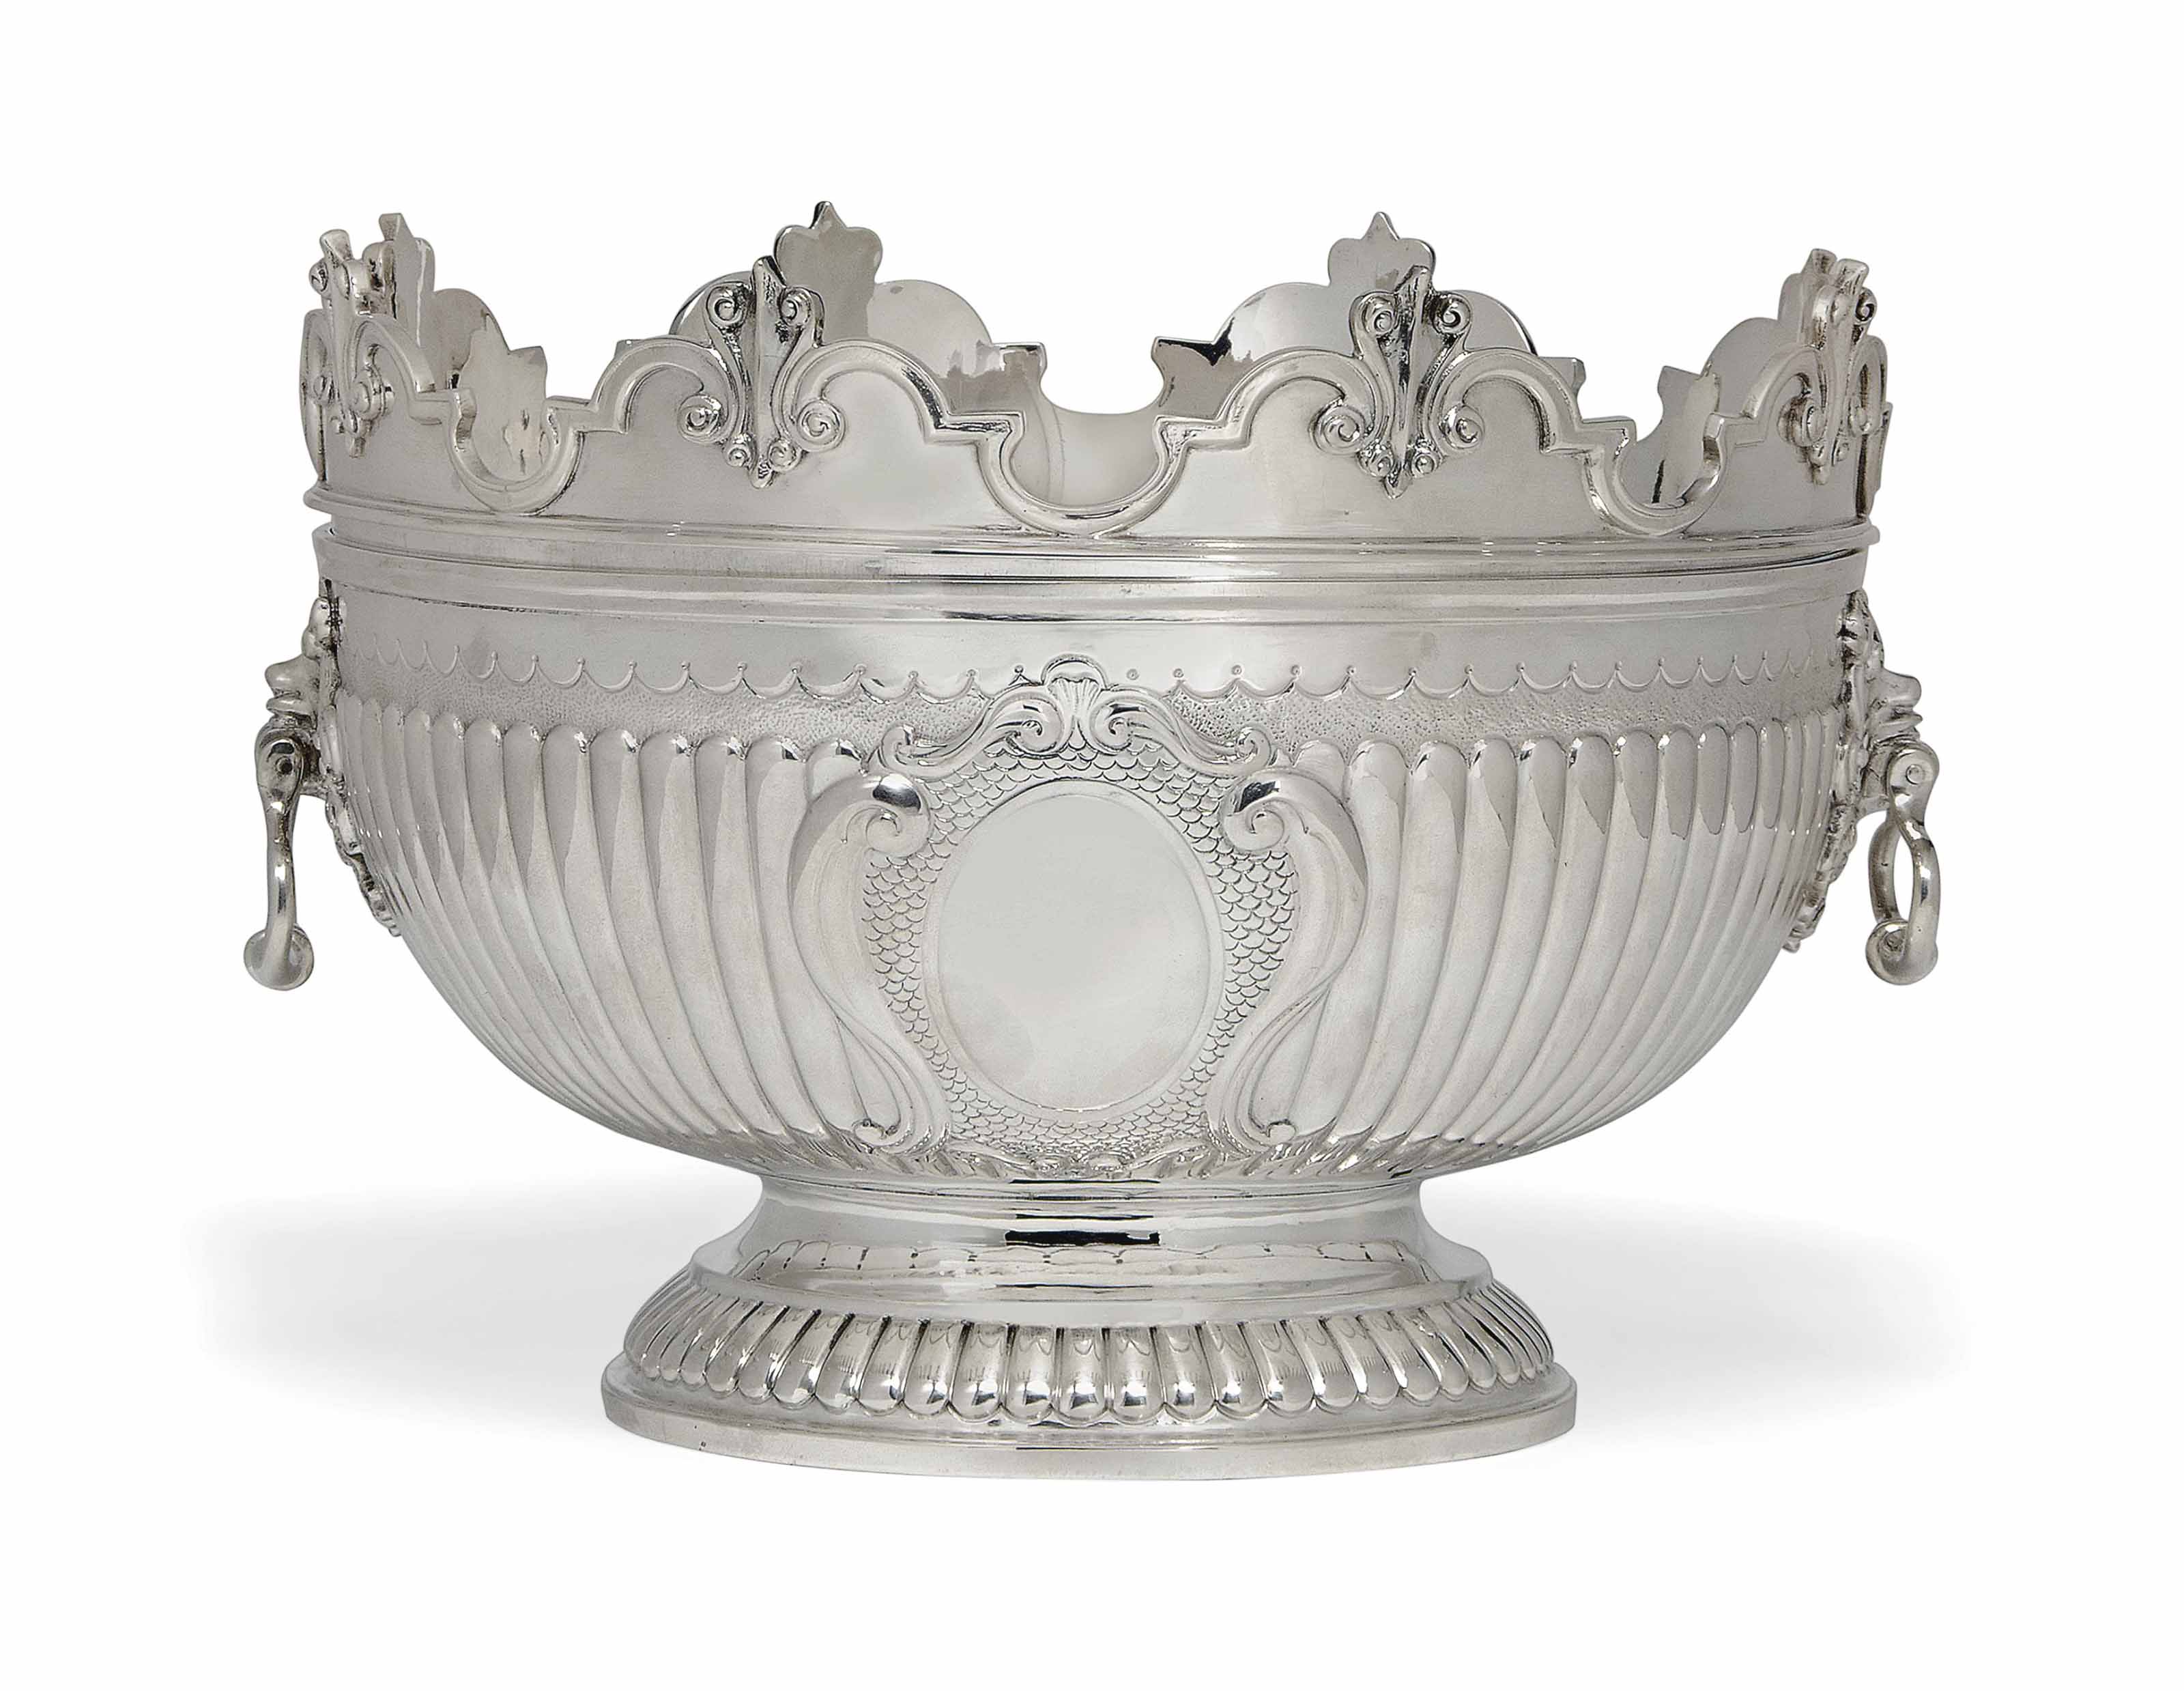 A VICTORIAN SILVER MONTEITH BOWL IN THE WILLIAM III STYLE